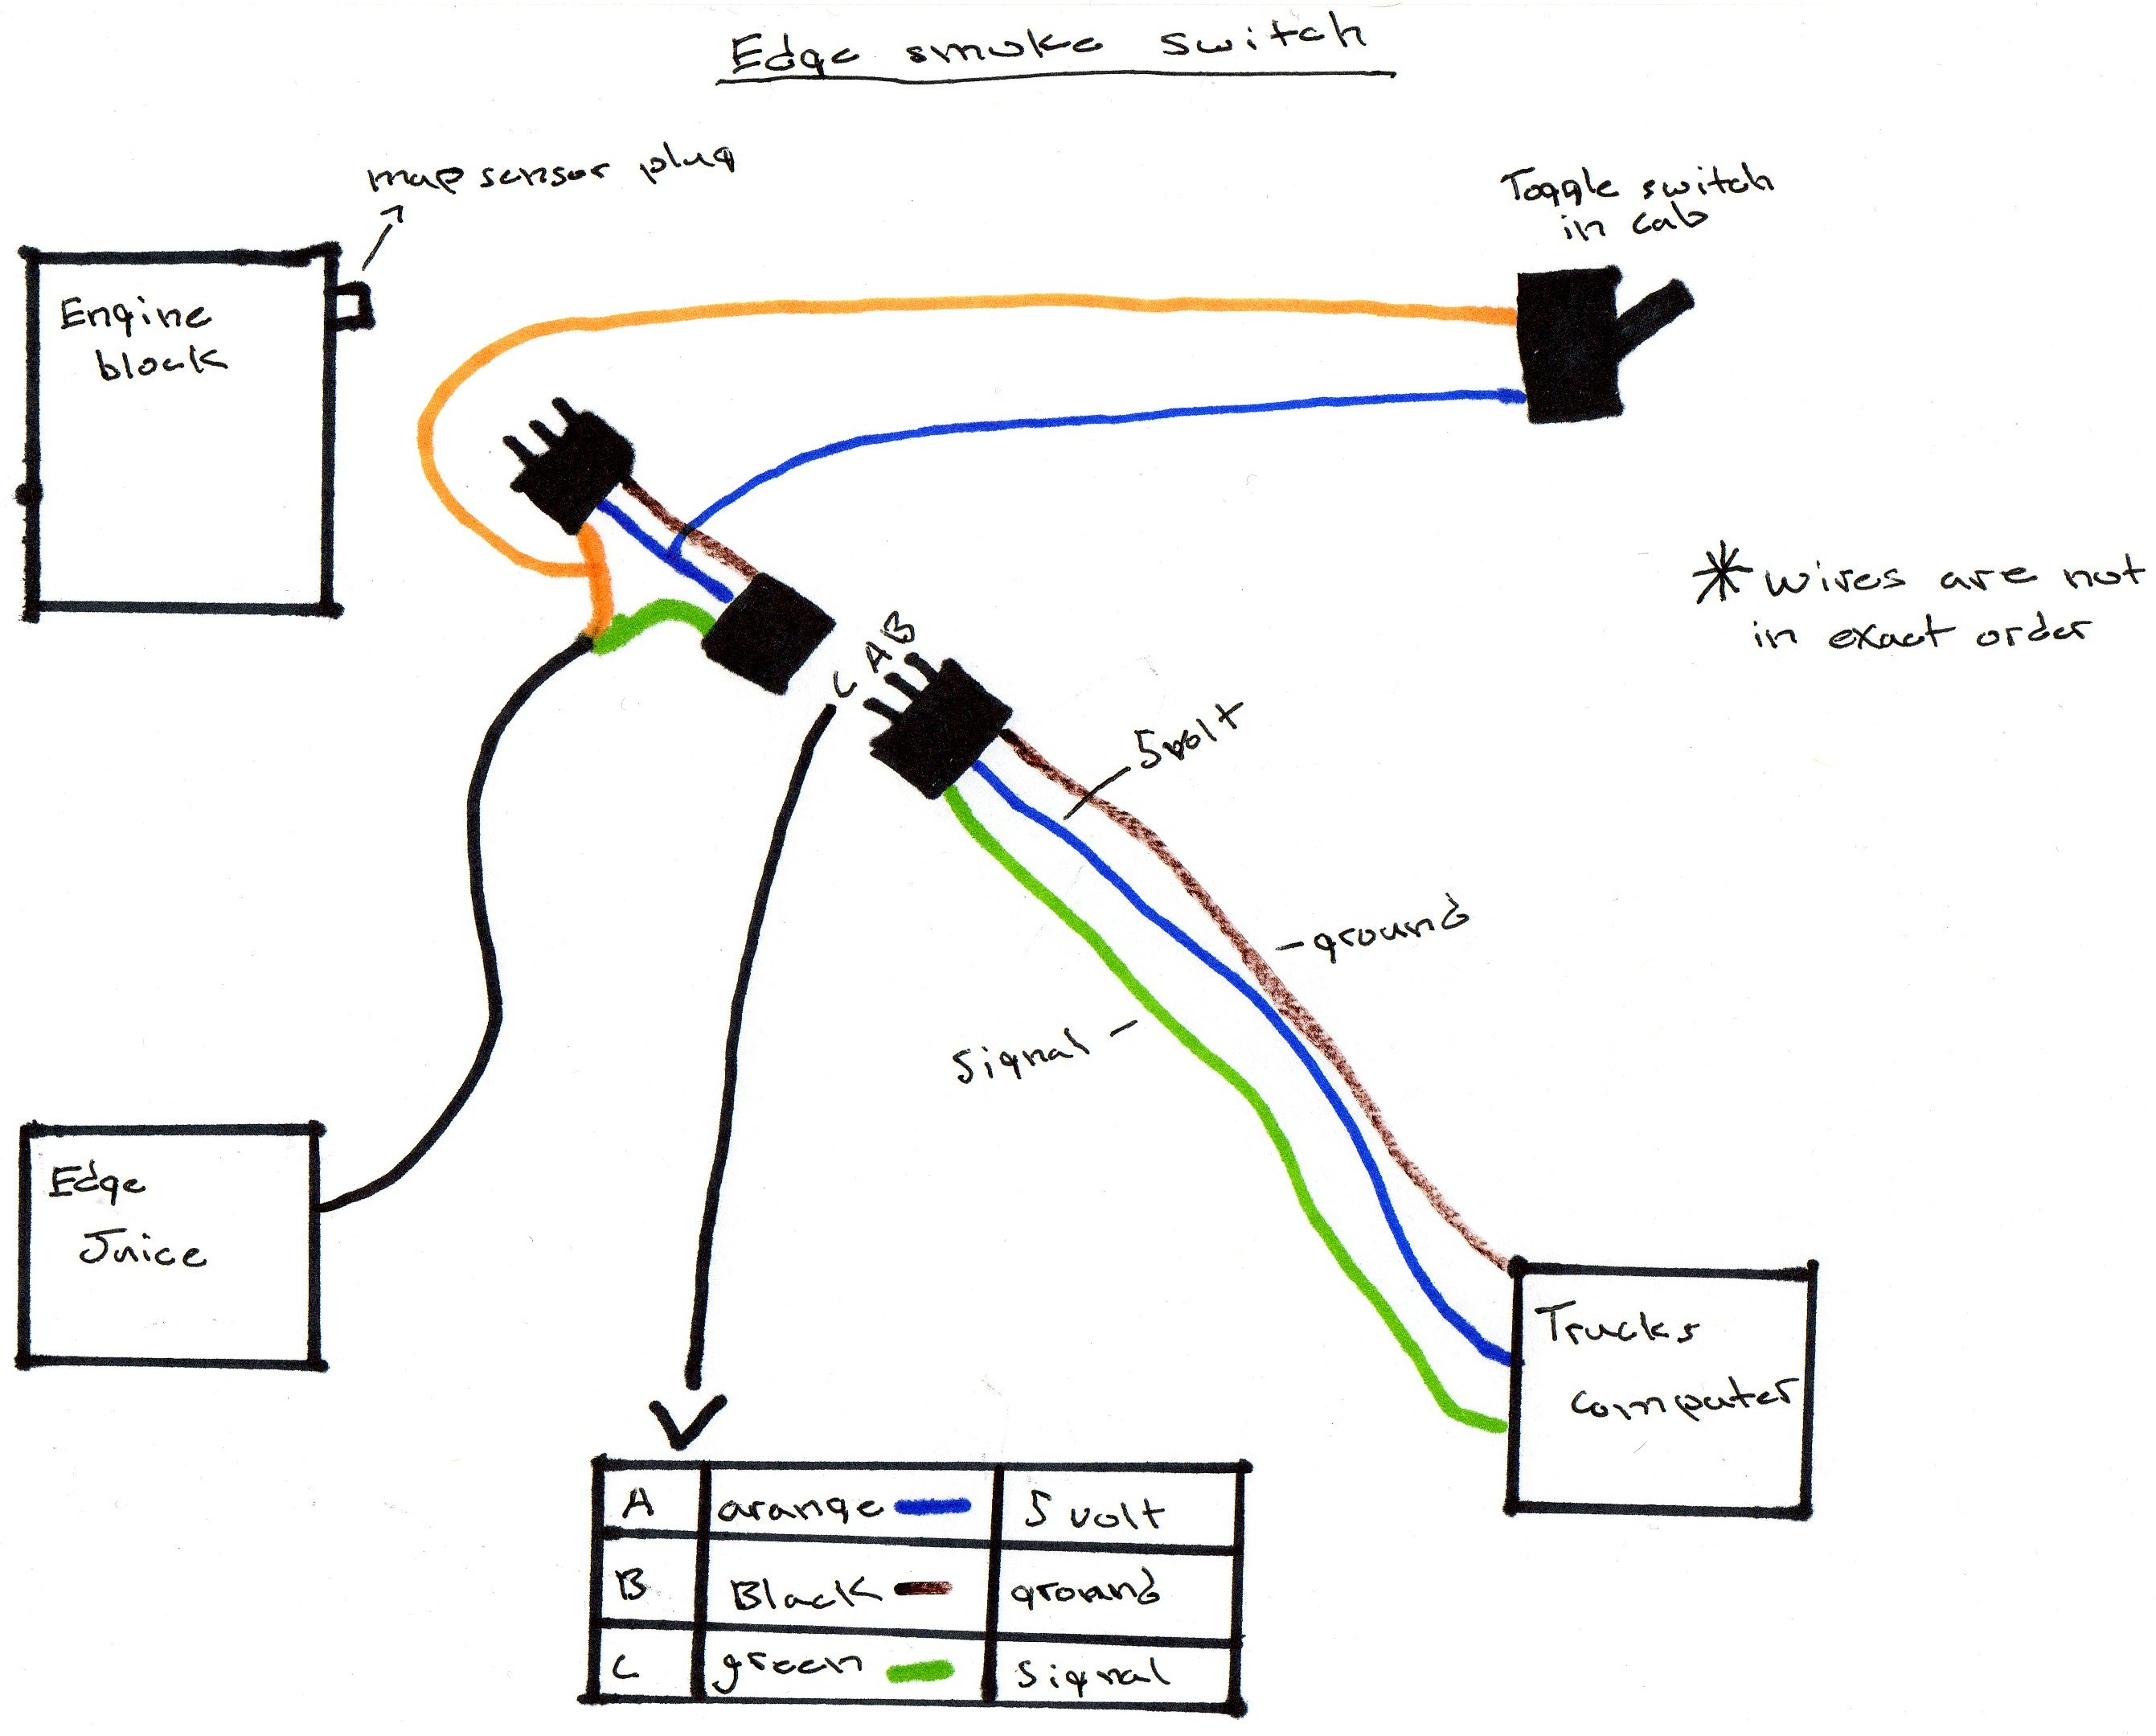 01 Cummins Smoke Switch Wiring Diagram Great Installation Of 2001 Dodge Diesel Truck Wont Work Forum Rh Cumminsforum Com Engine Diagrams Freightliner Motorhome